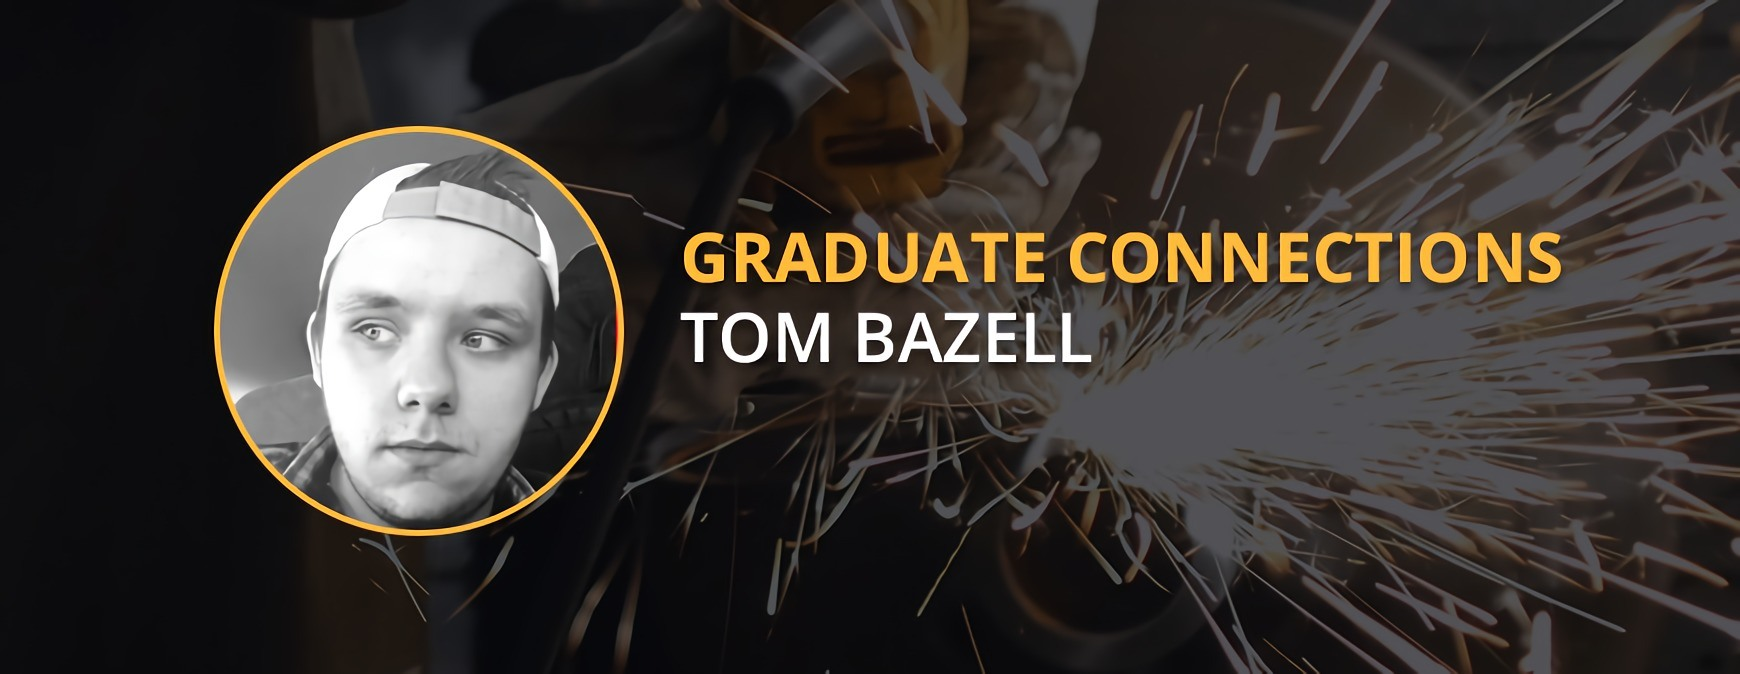 Tom Bazell Graduate Connection